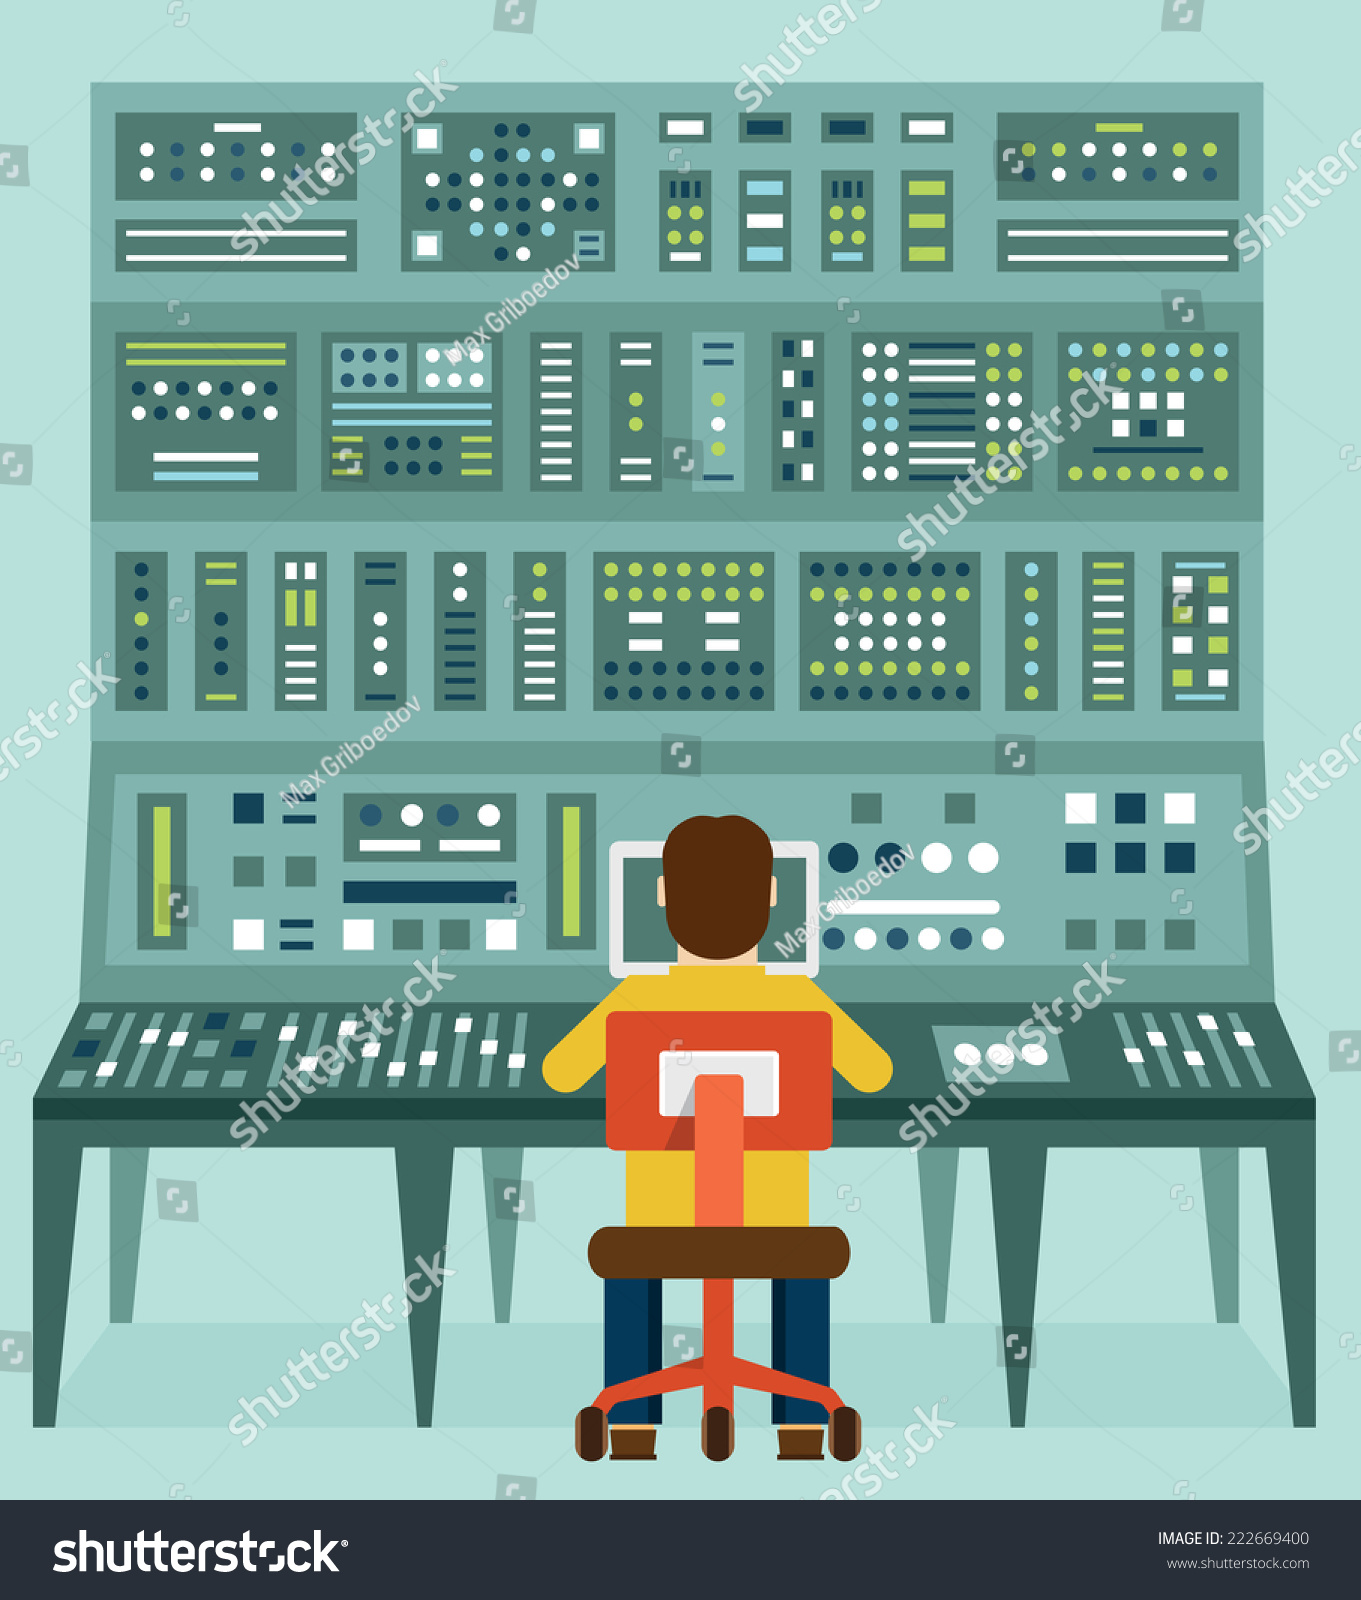 Flat Illustration Of Expert With Control Panel. Analytics